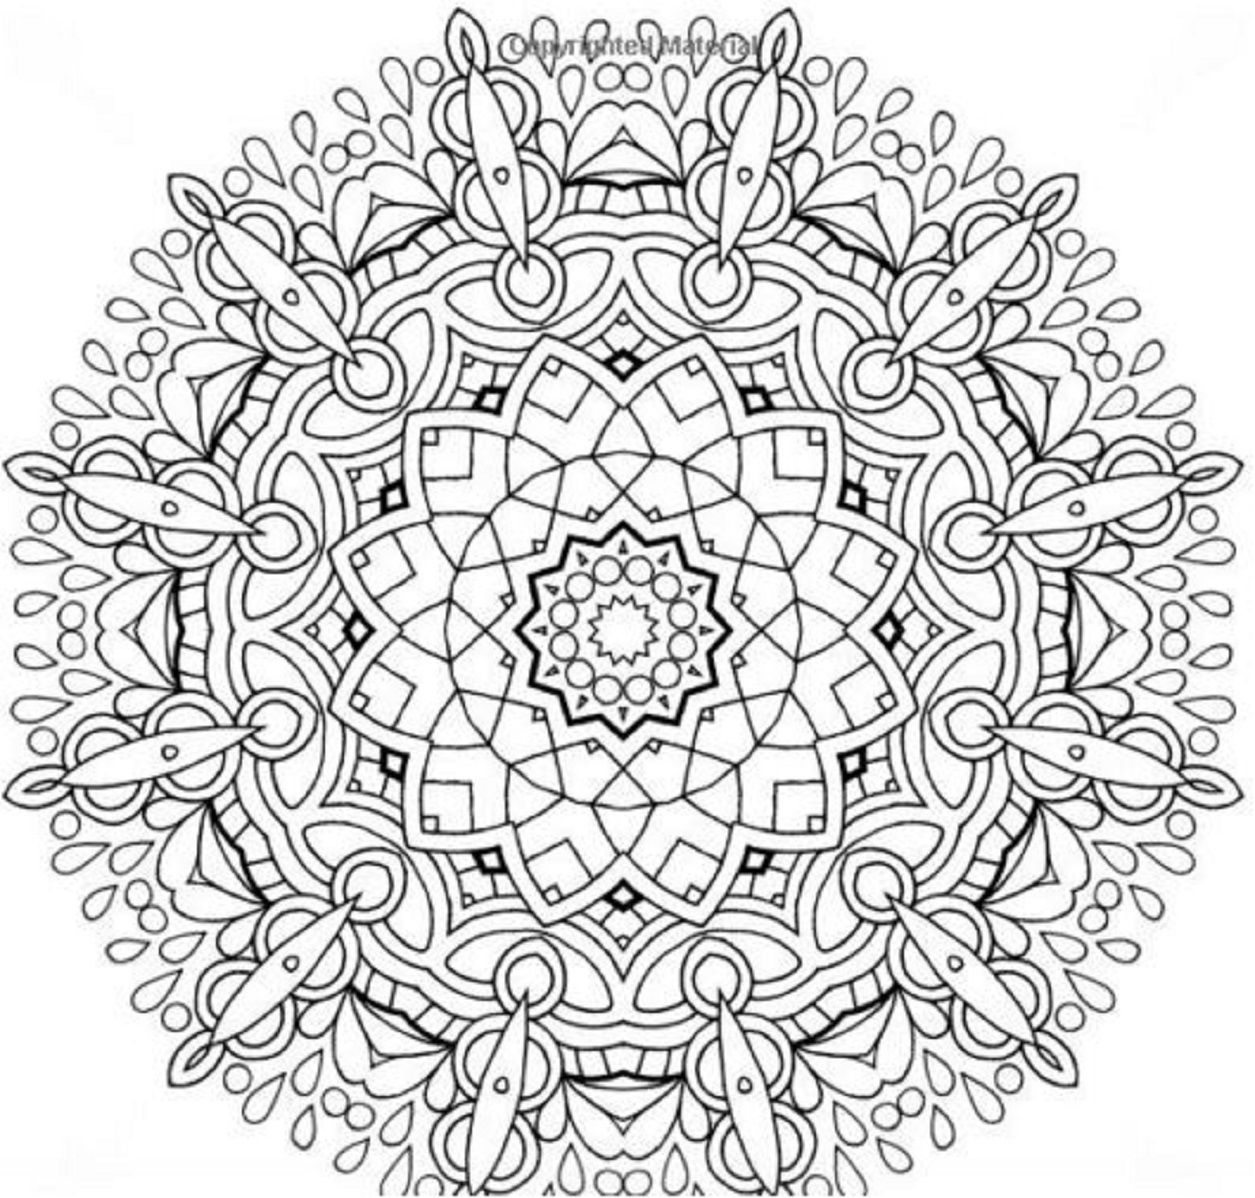 Stress Relief Mandala Coloring Pages Printable Sketch